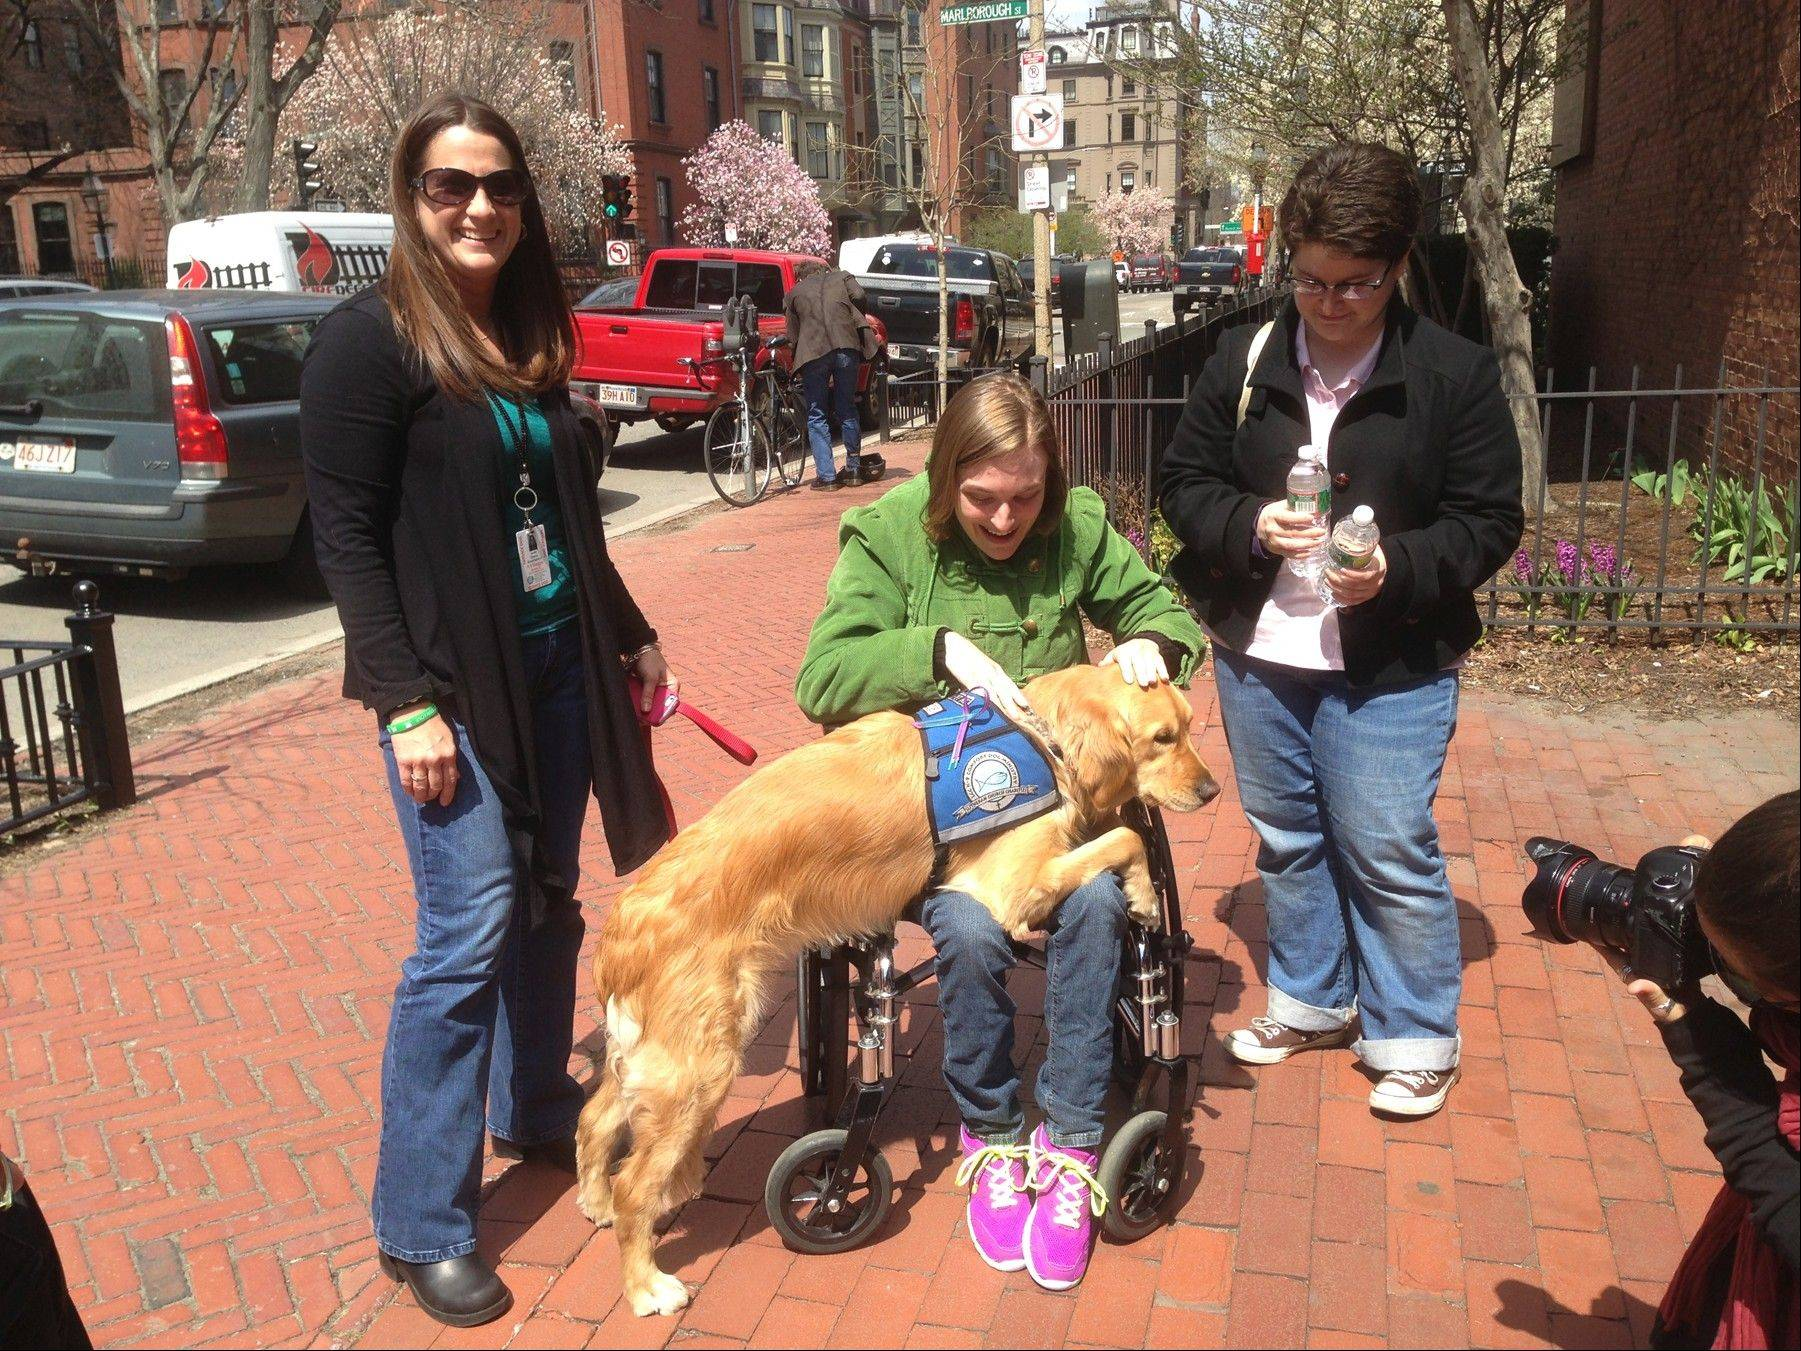 Handler Deana Mastropietro and K-9 Maggie visit with residents on the streets of Boson.